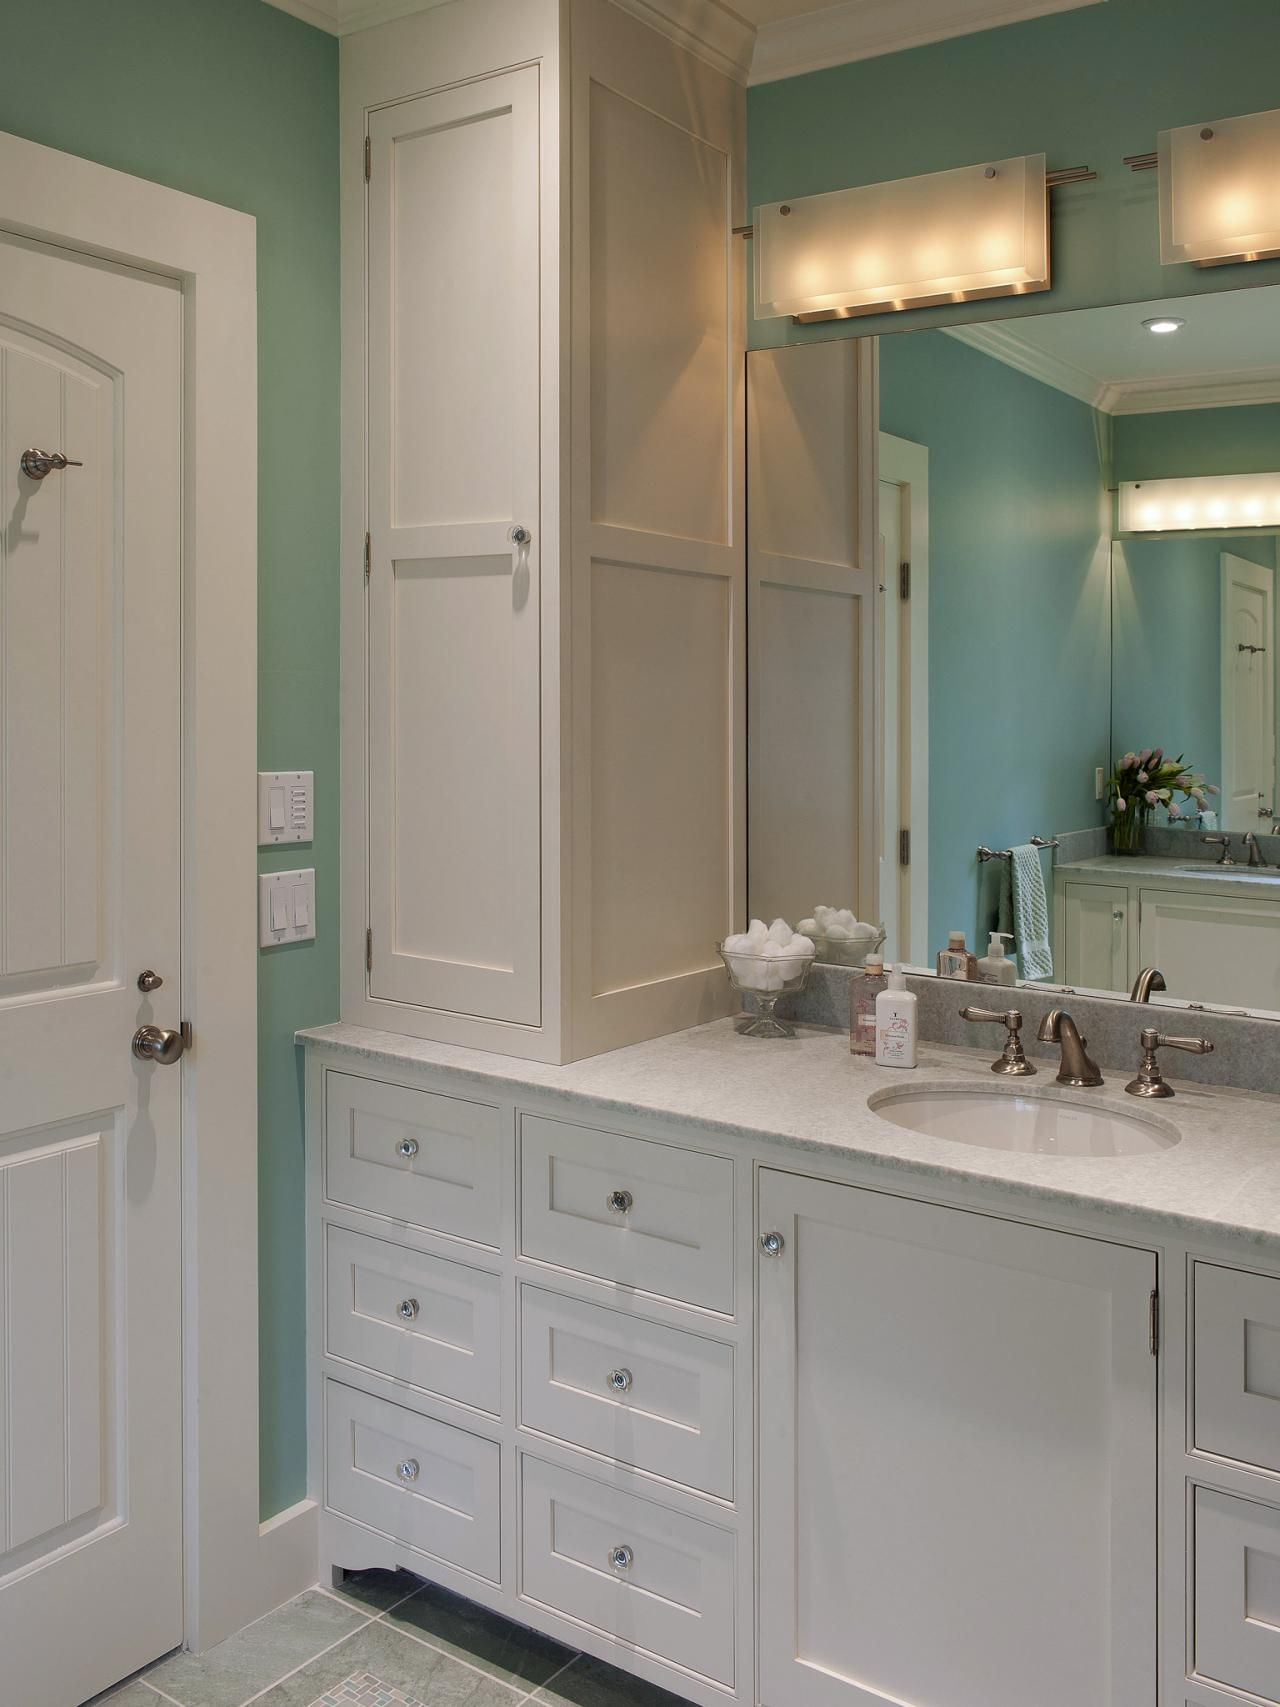 78  images about Bathroom Vanities and Layout ideas on Pinterest   Granite bathroom  Vanities and Vanity tops. 78  images about Bathroom Vanities and Layout ideas on Pinterest